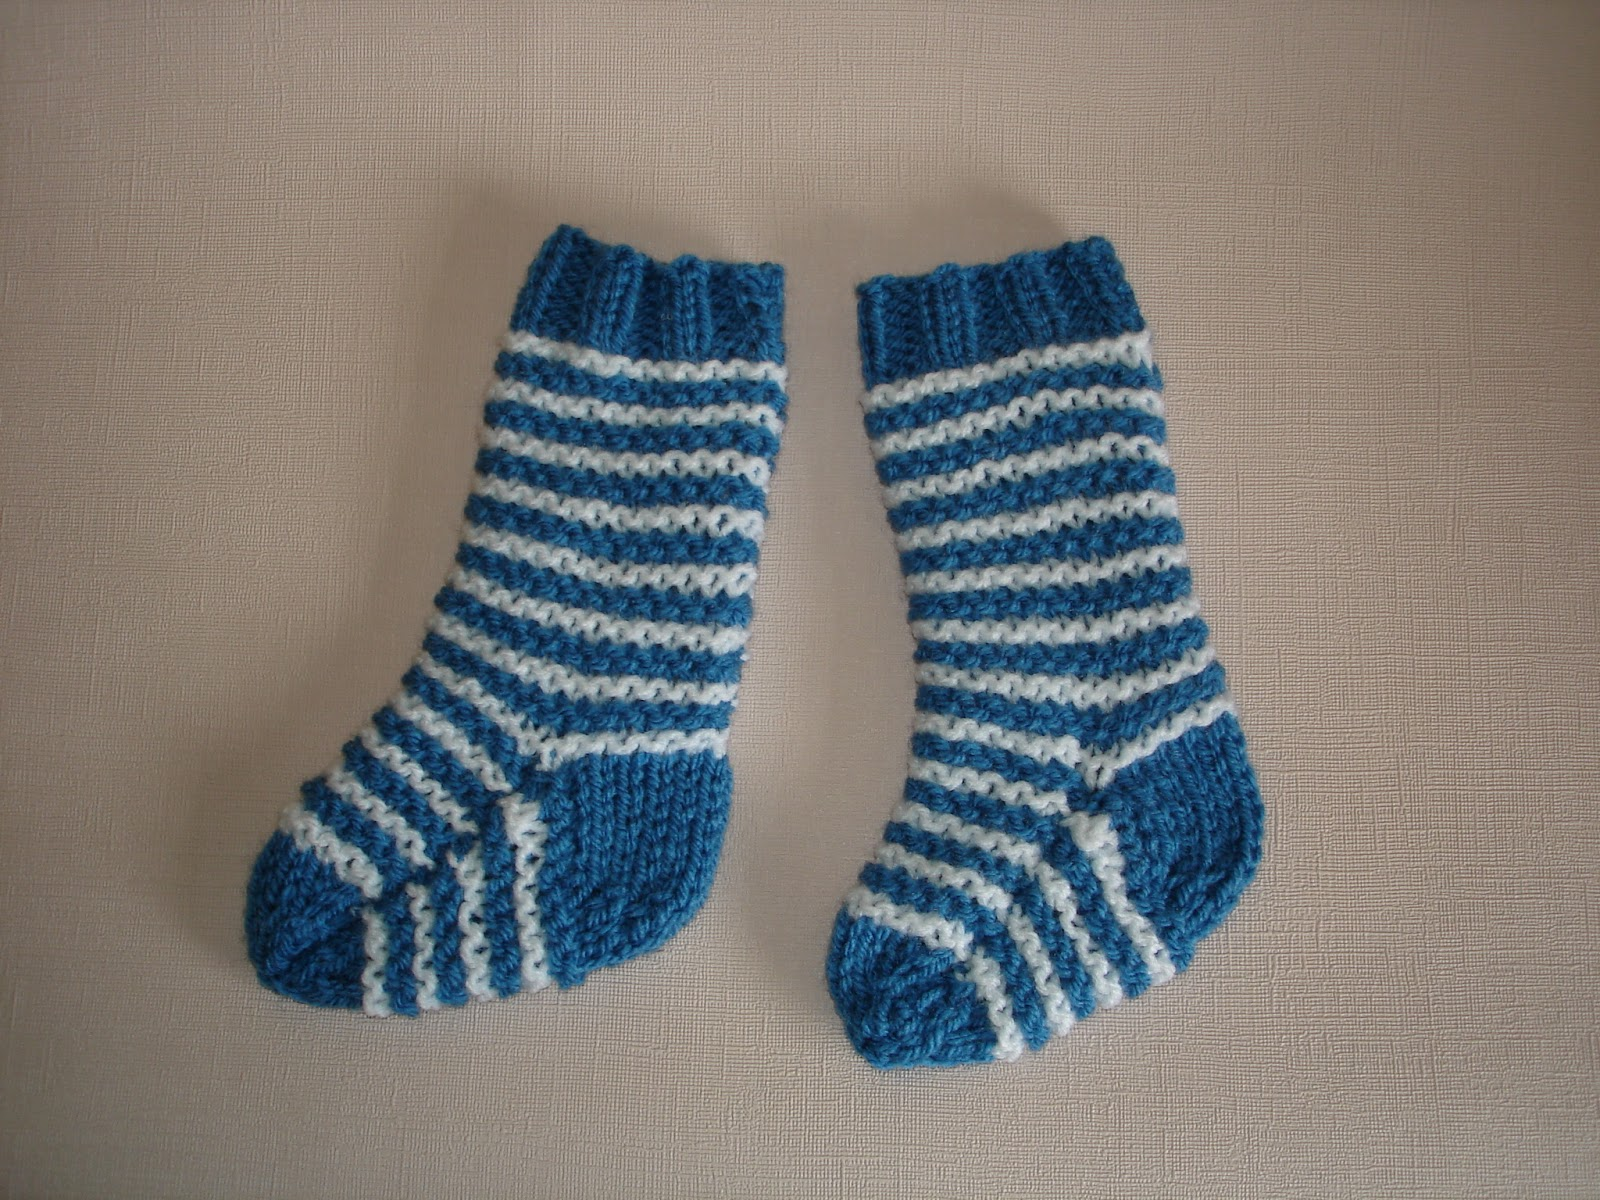 Knitted Sock Patterns On Two Needles : mariannas lazy daisy days: 2-needle baby socks